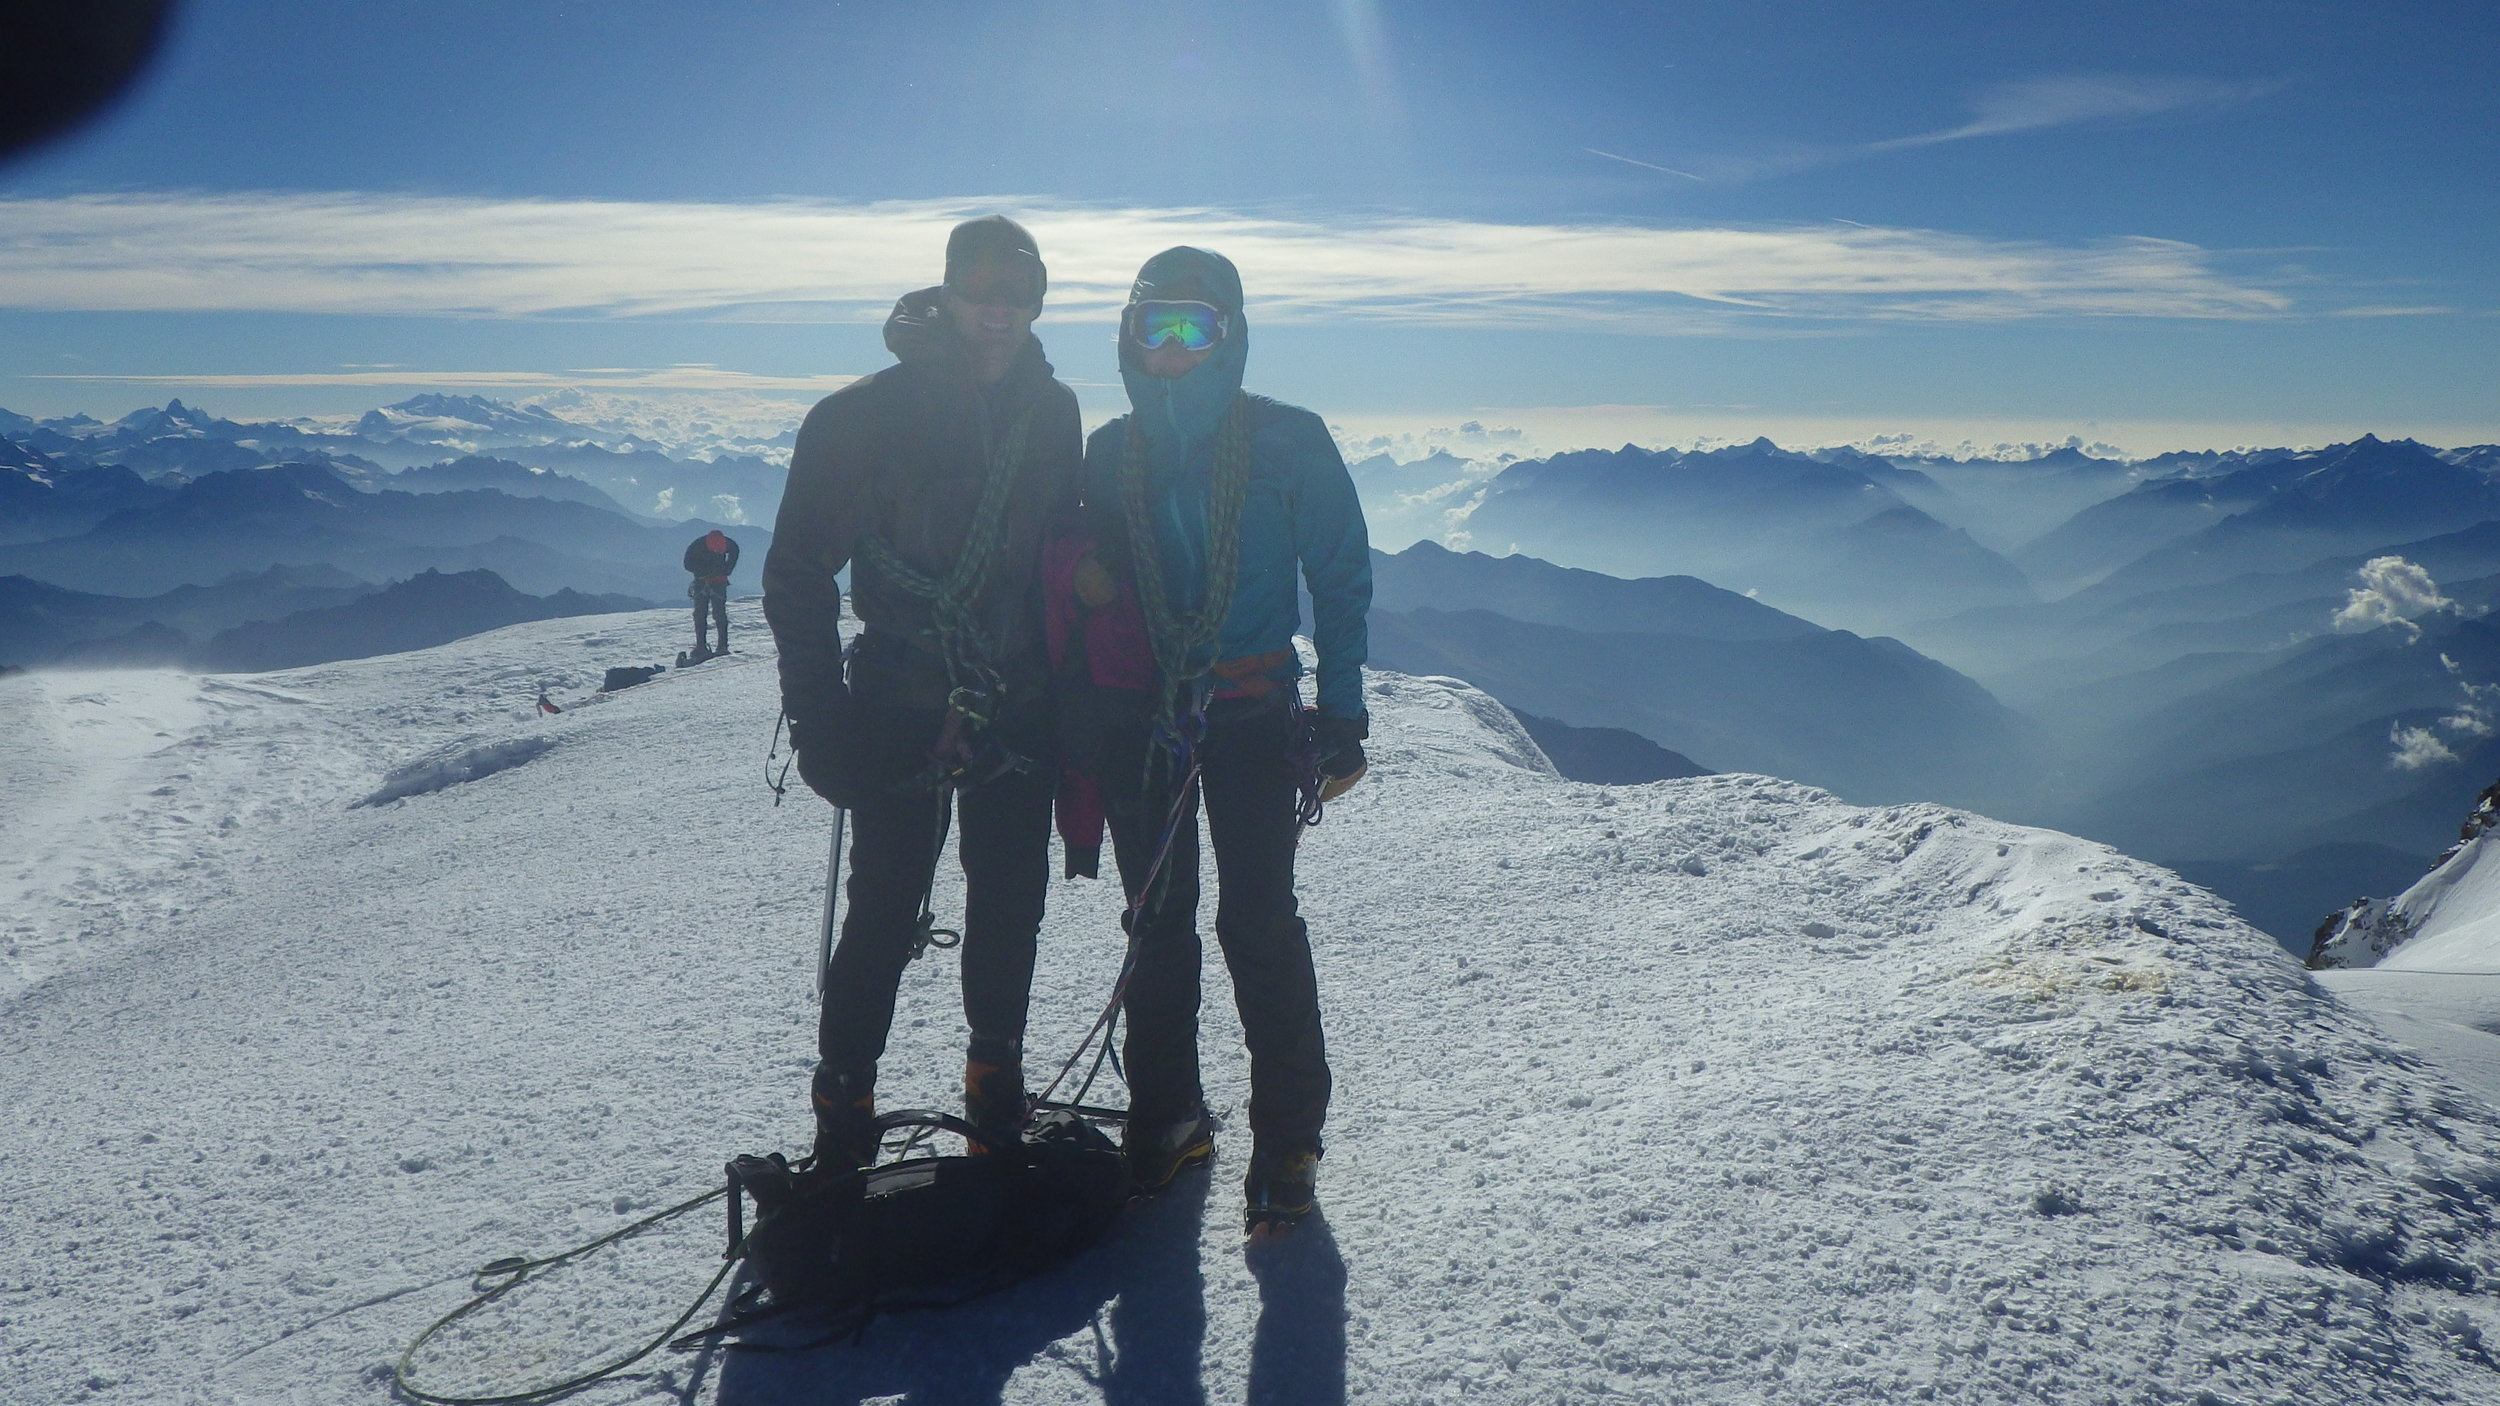 Summit of Mt. Blanc, France. Joint self-supported climb to the top of Western Europe.